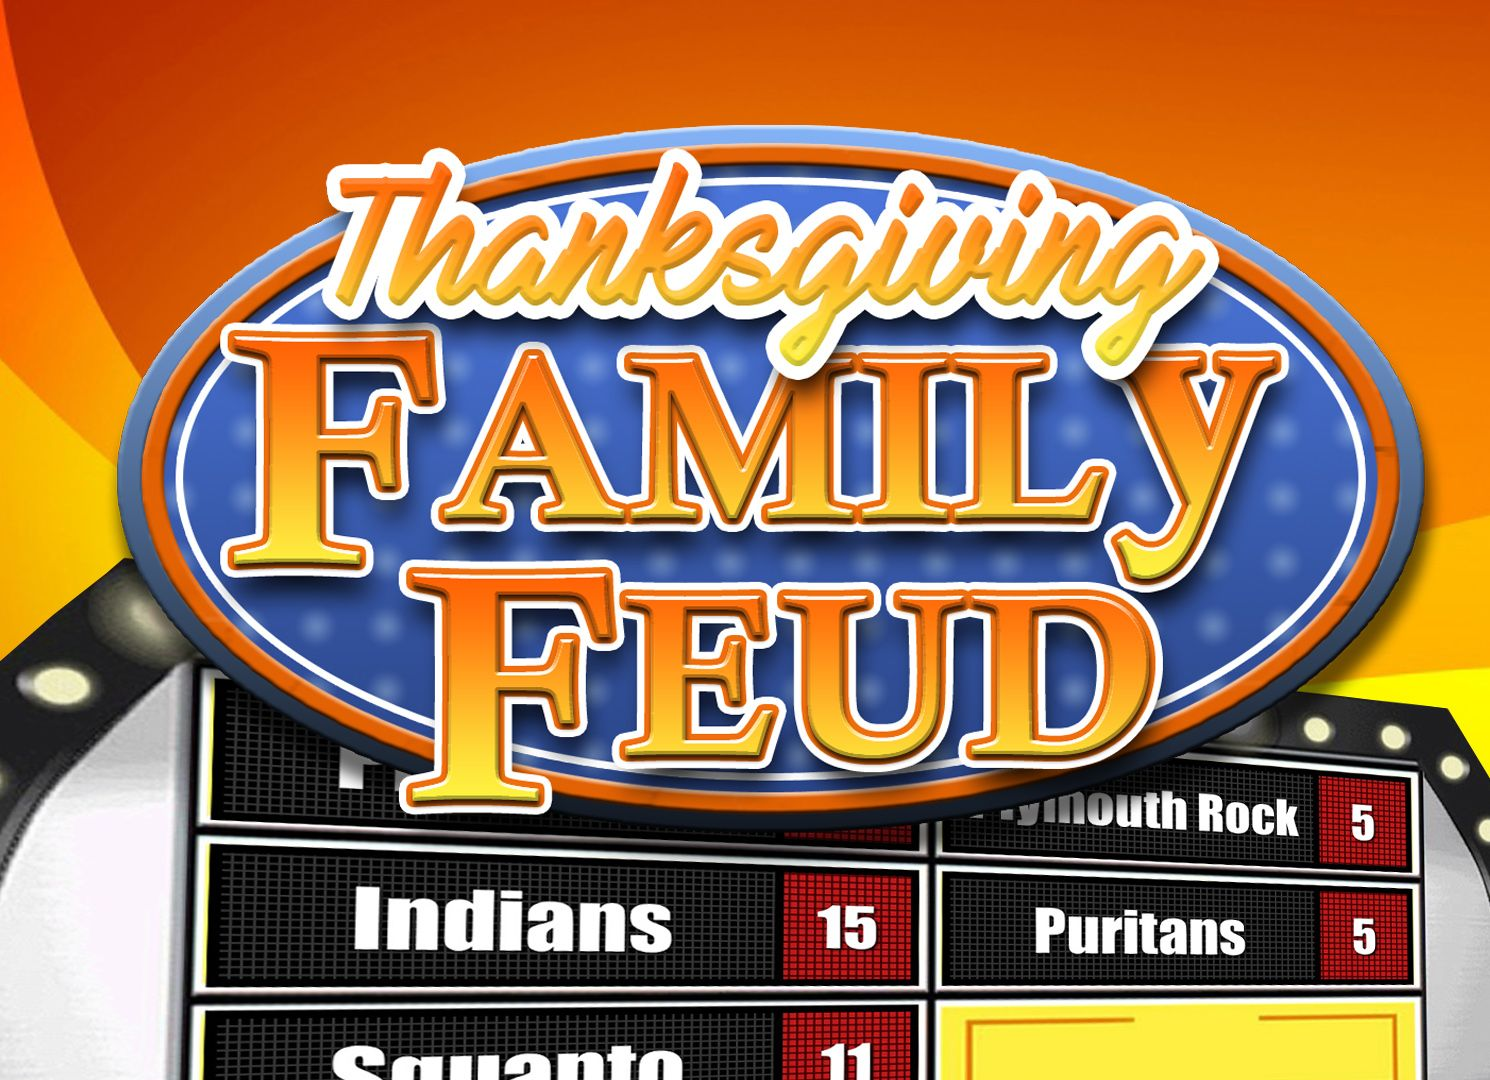 amazing thanksgiving family feud powerpoint game. | youth ministry, Powerpoint templates